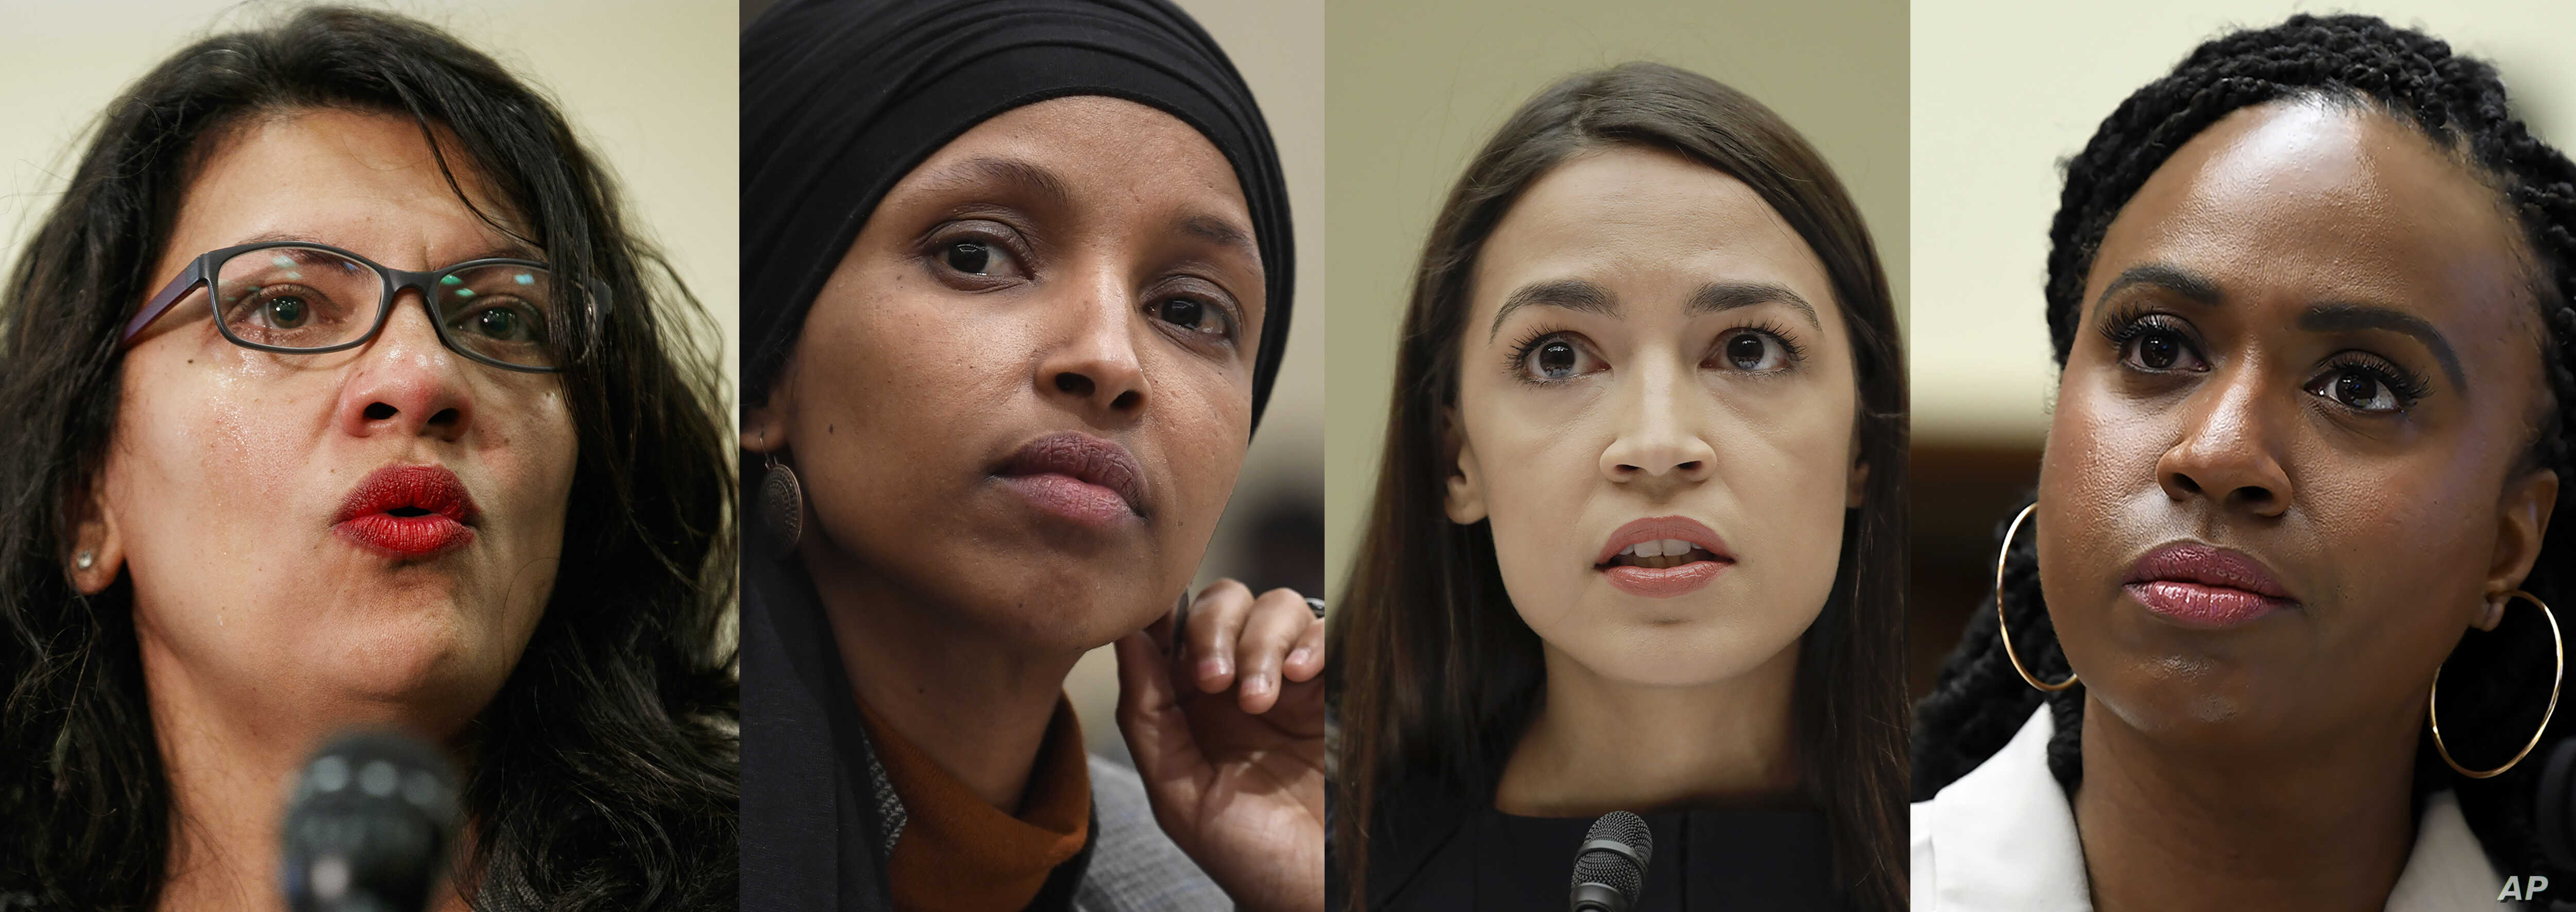 President Donald Trump portrays Rep. Rashida Tlaib, D-Mich., left, Rep. Ilhan Omar, D-Minn., 2nd left, Rep. Alexandria Ocasio-Cortez, D-NY., 3rd left, and Rep. Ayanna Pressley, D-Mass., right, as foreign-born troublemakers.